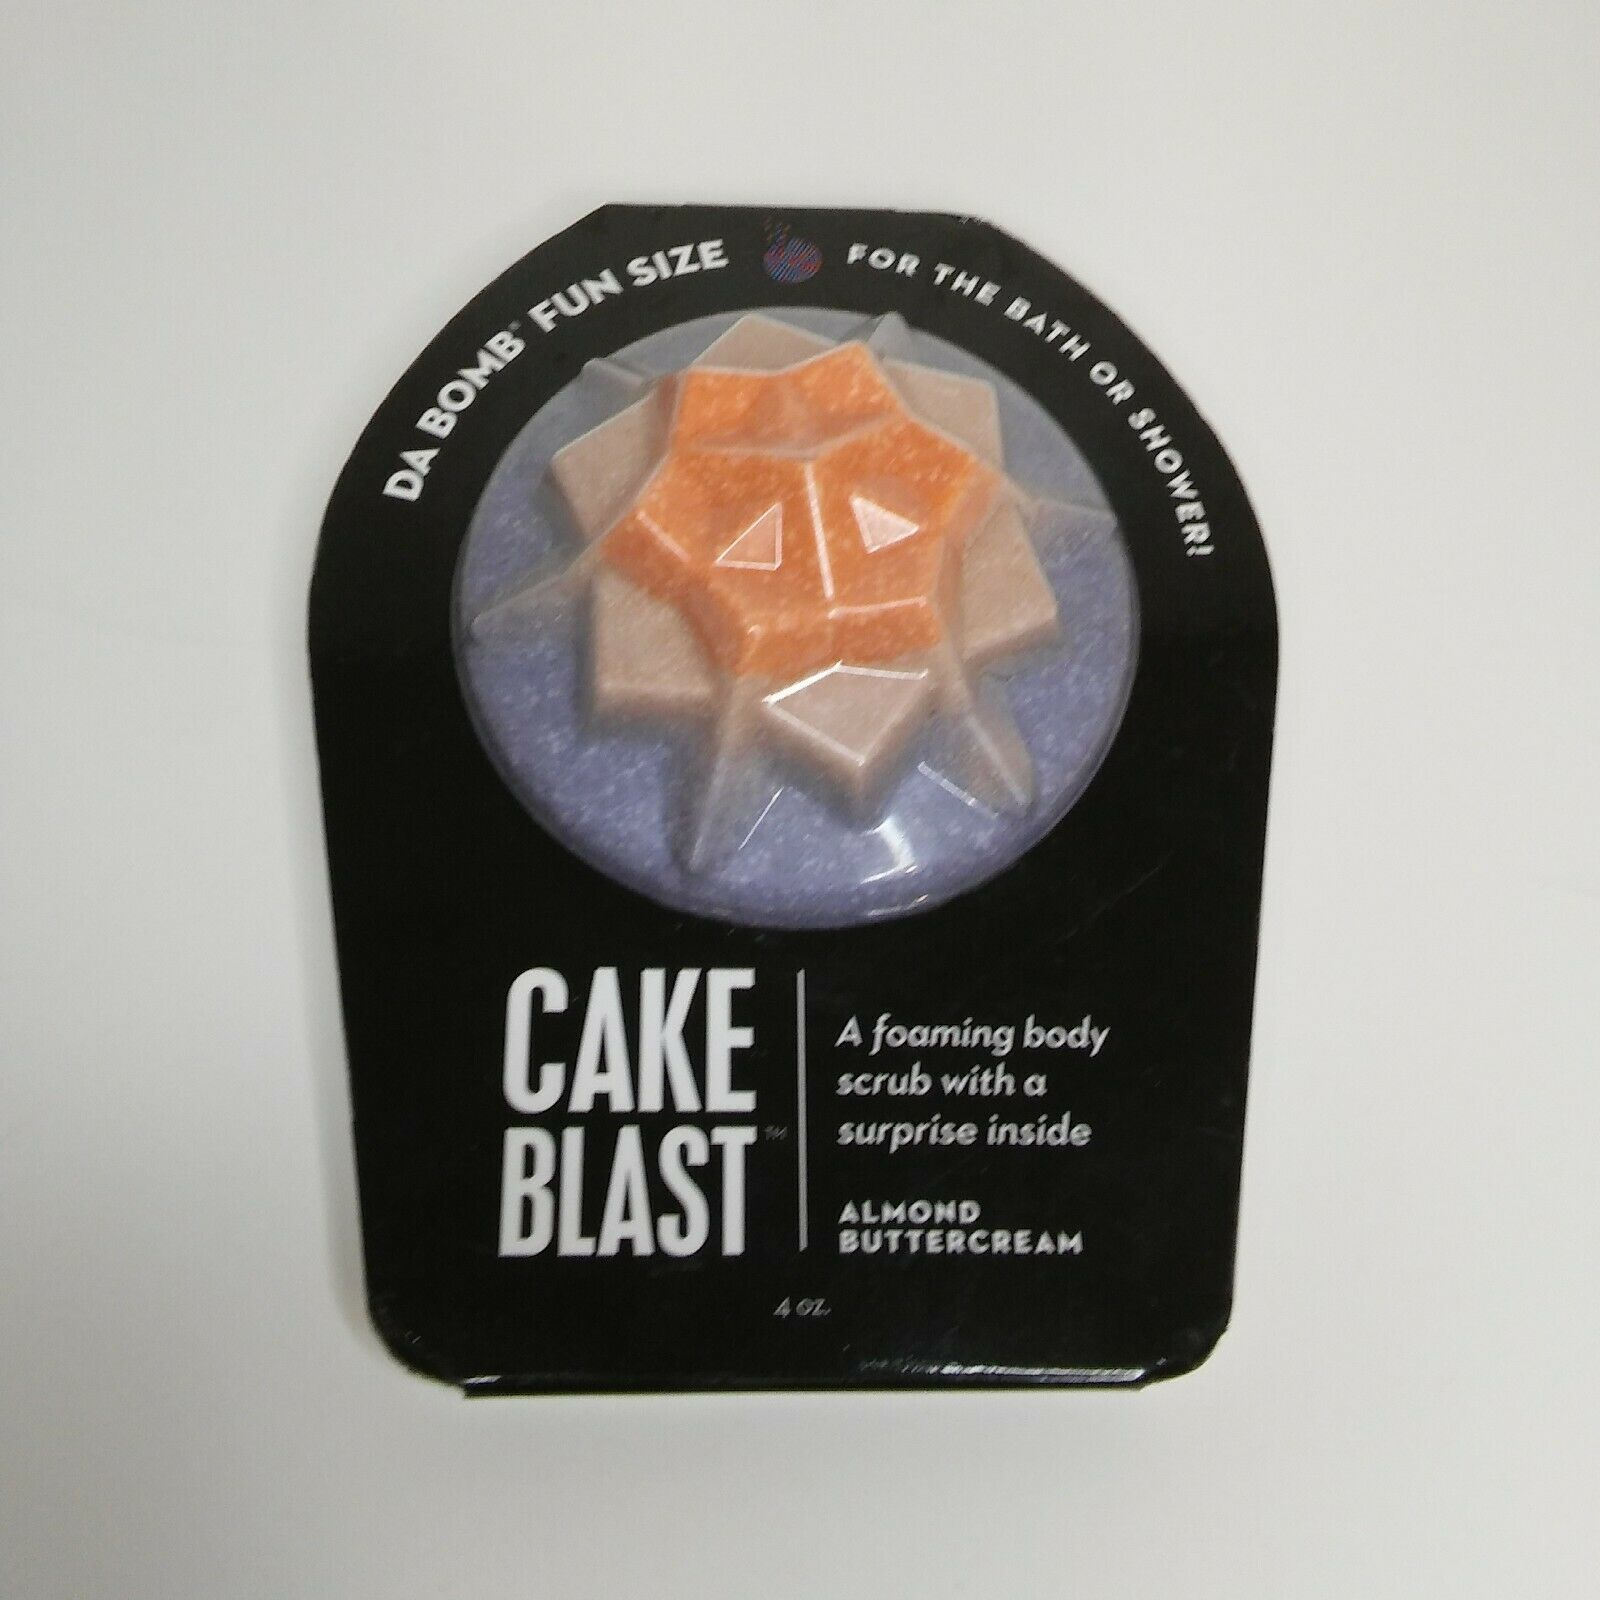 Da Bomb Fun Size Cake Blast Foaming Body Scrub  Almond Buttercream 4 oz - $5.44